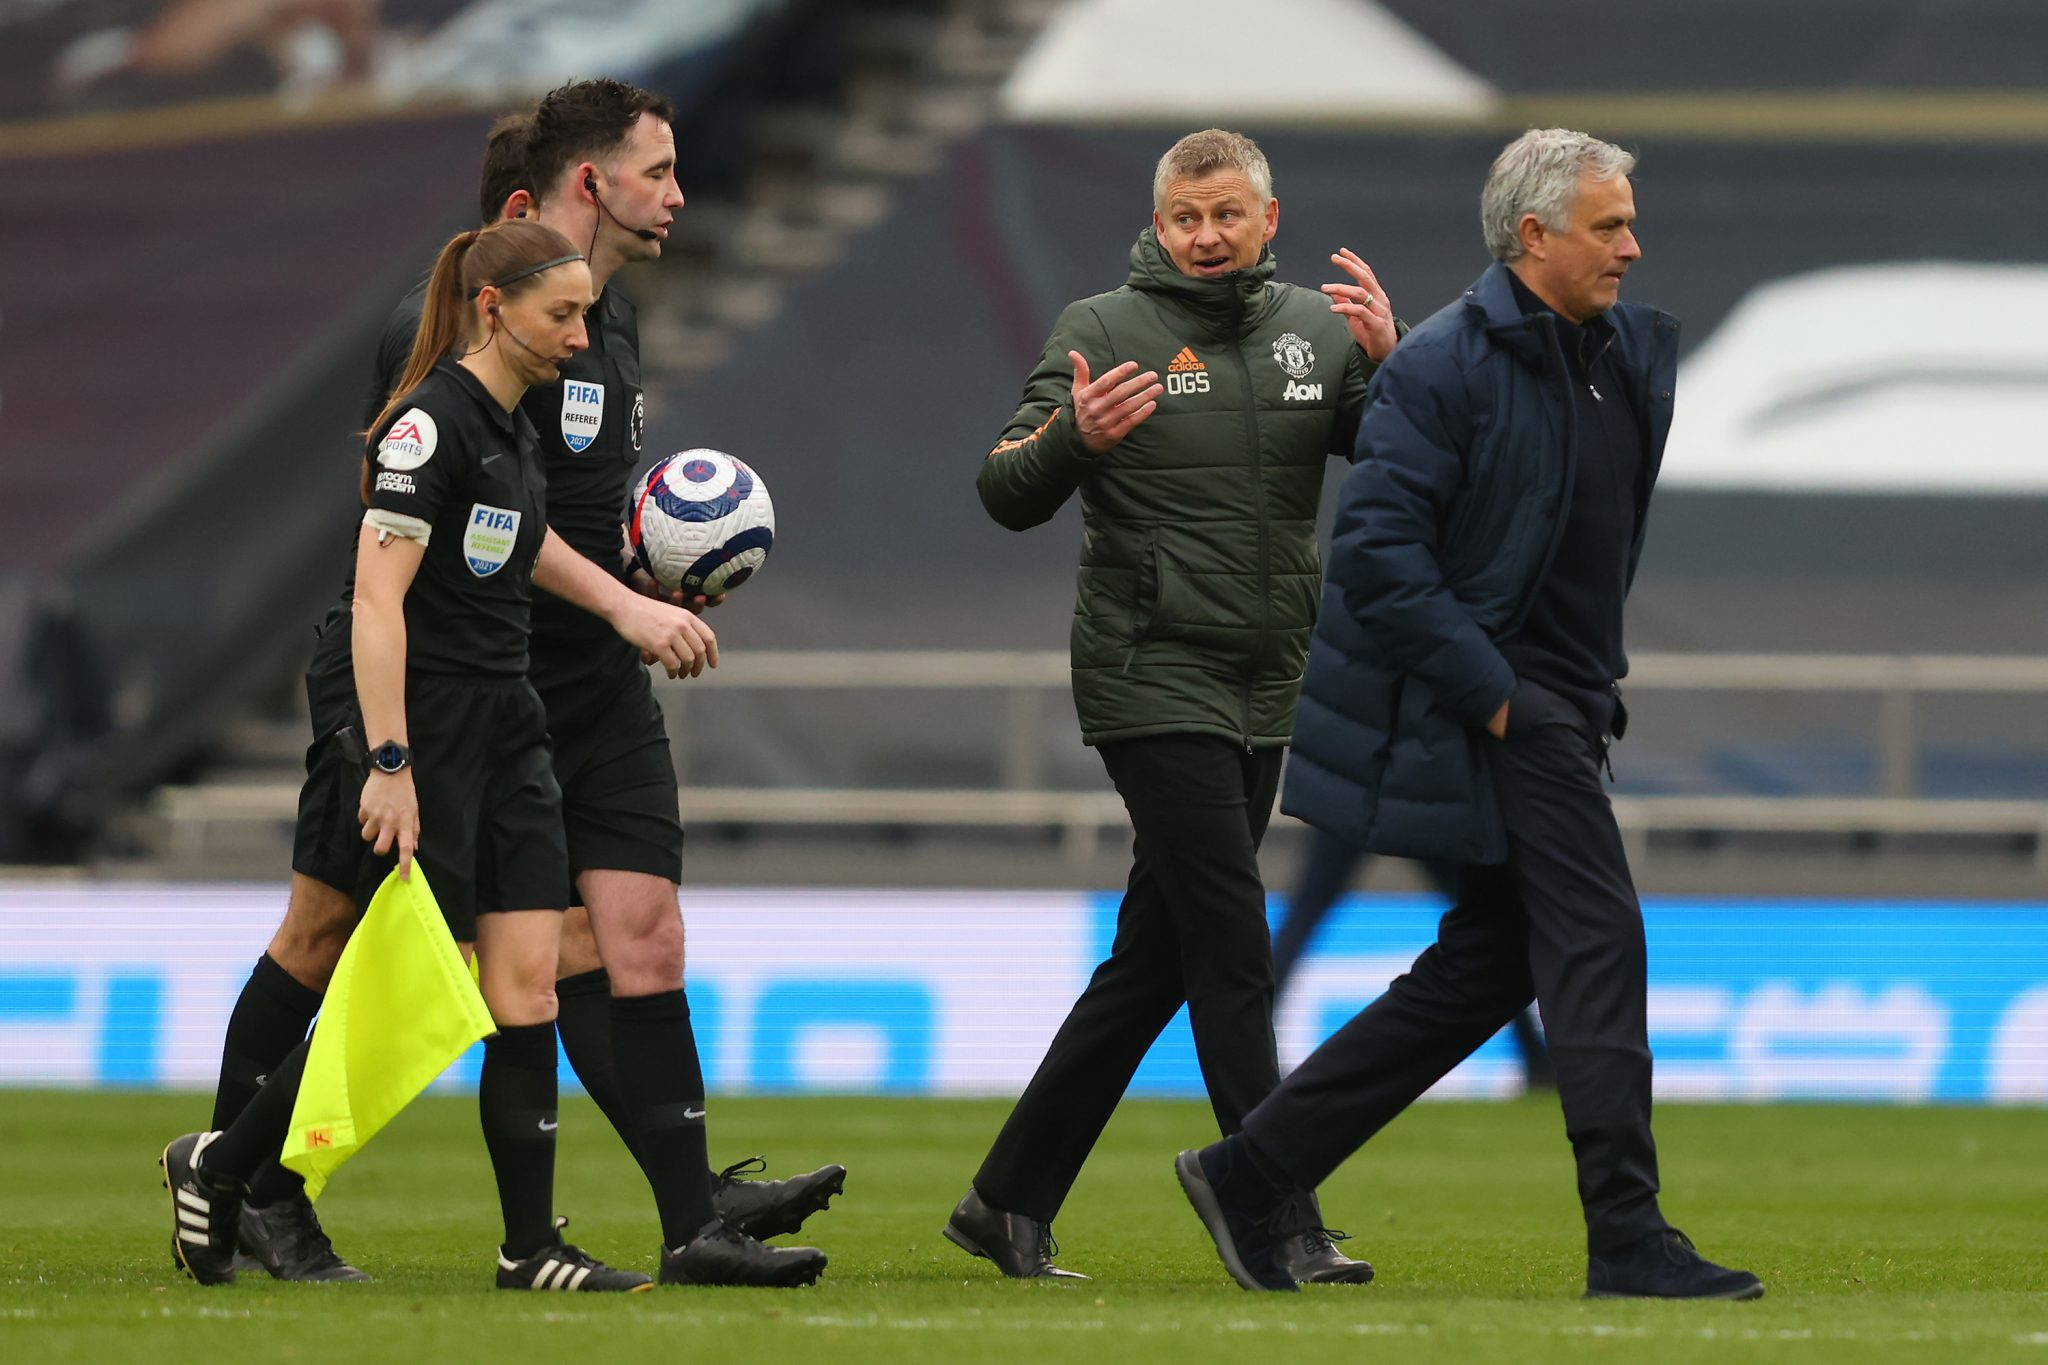 Sian Massey-Ellis refereeing the Spurs United match